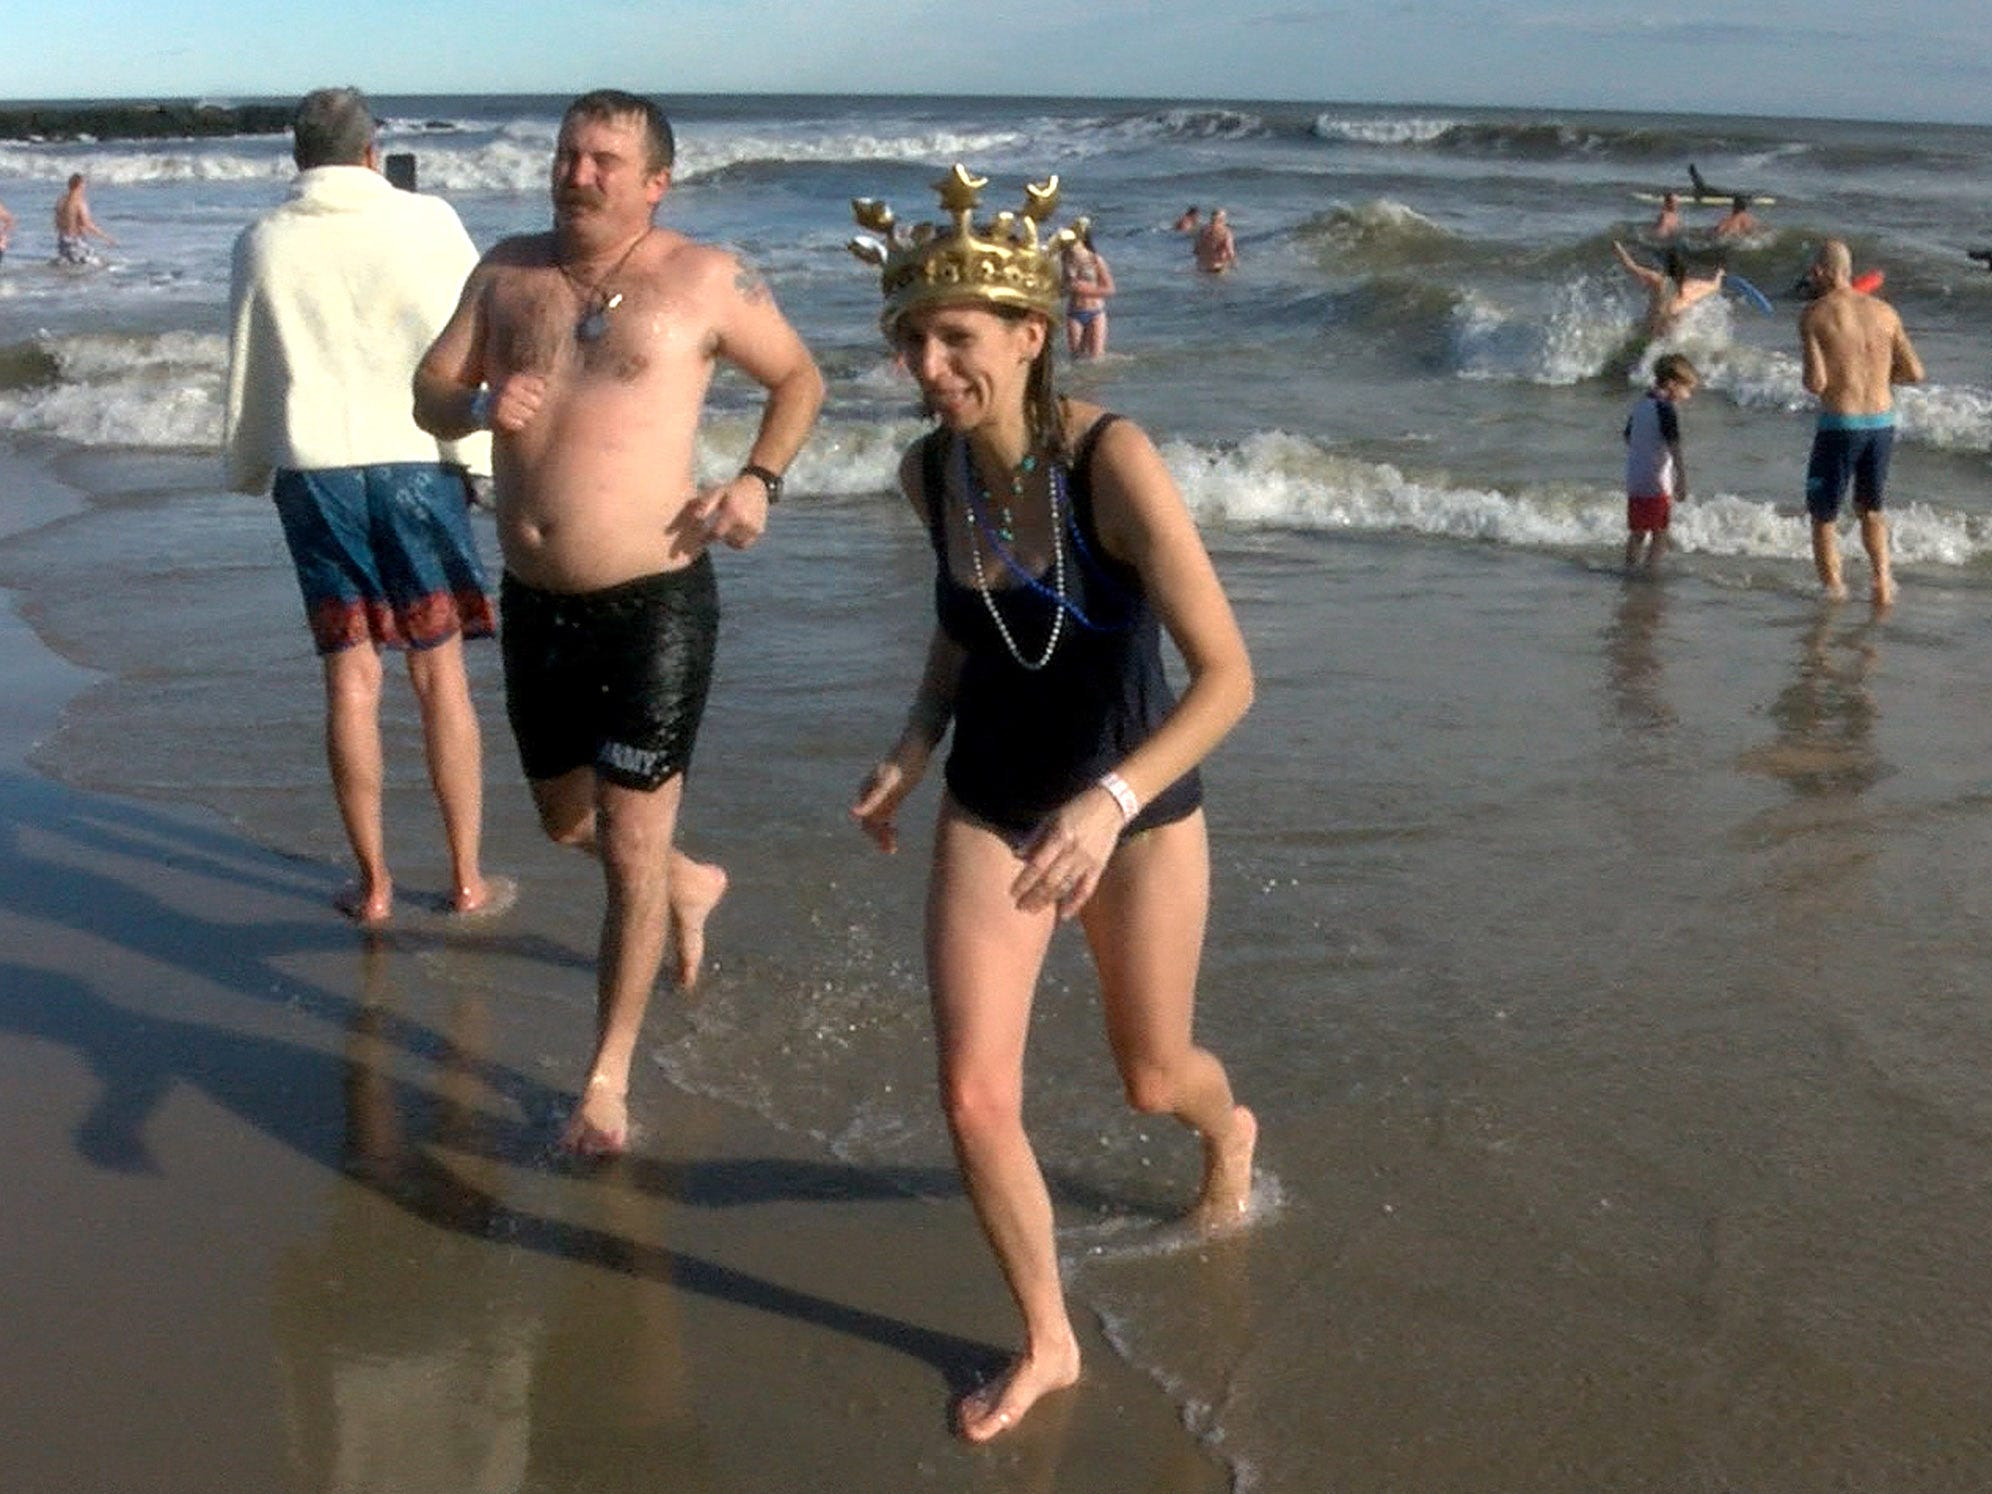 Mandy Hanigan, Red Bank, returns to shore after taking her New Years Day dip in the ocean off Asbury Park during the Sons of Ireland Polar Plunge Tuesday, January 1, 2019.